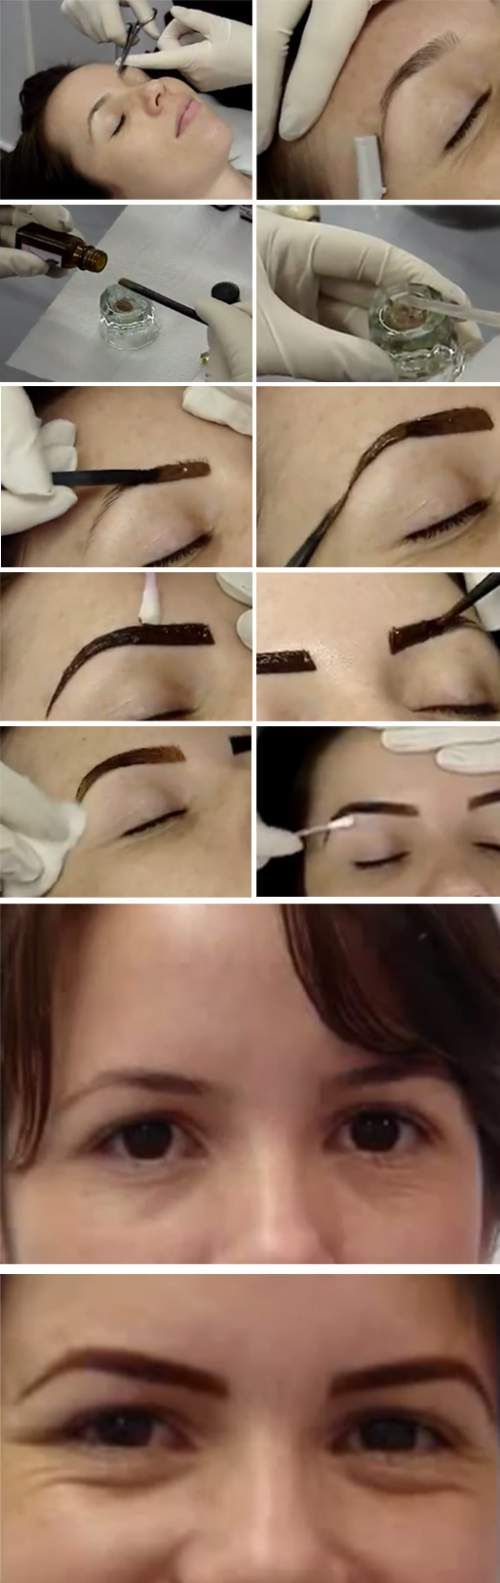 507 best brows images on Pinterest | Eye brows, Eyebrow shapes and ...